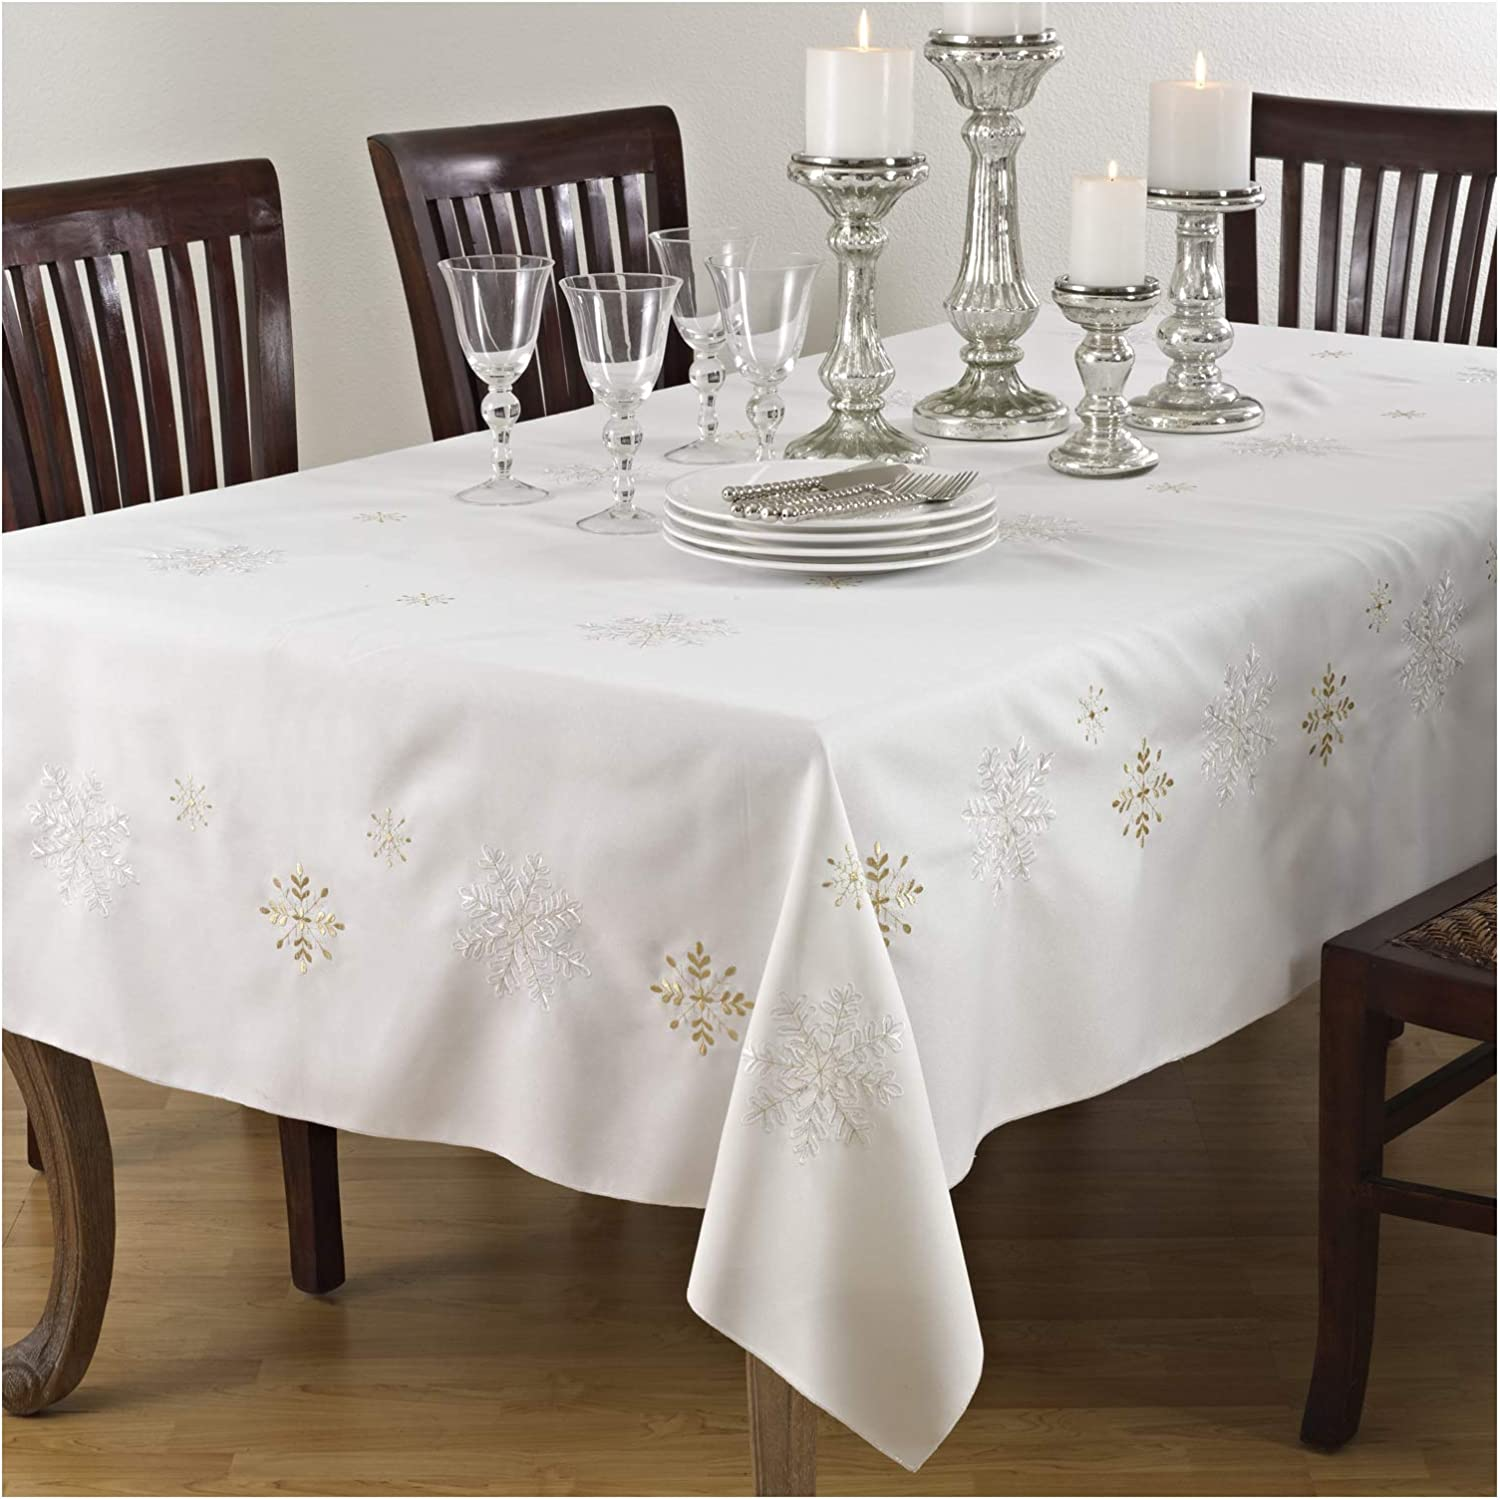 Occasion Gallery Ivory Winter Tablec Regular Max 62% OFF discount Holiday Snowflake Christmas